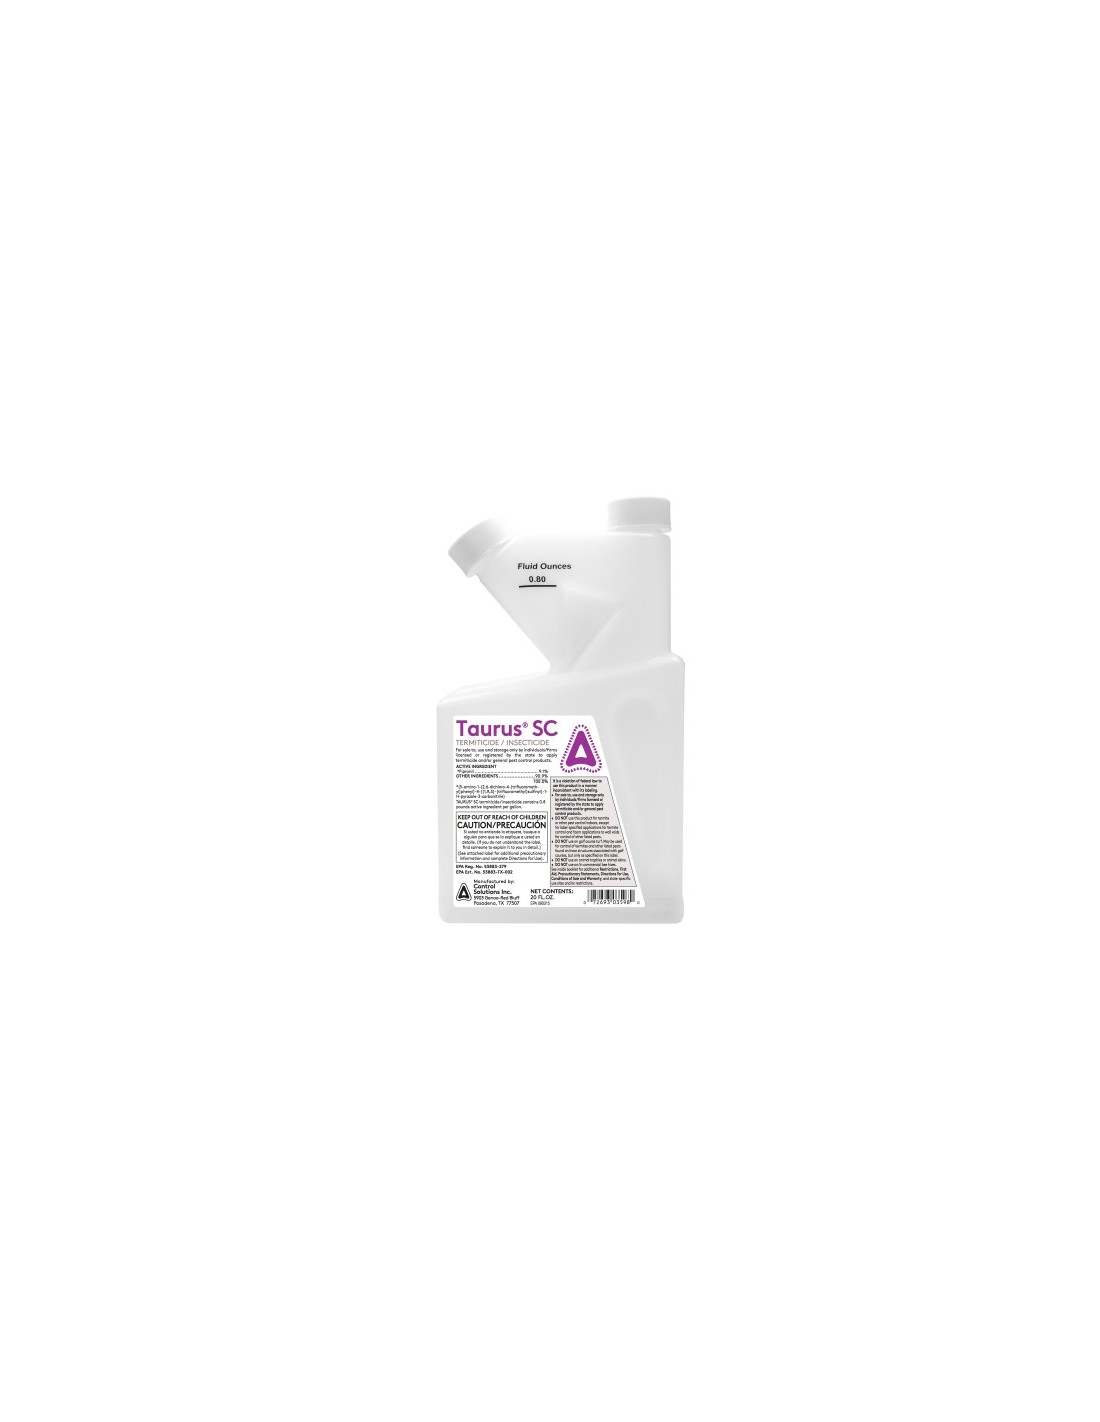 is this product safe for animals